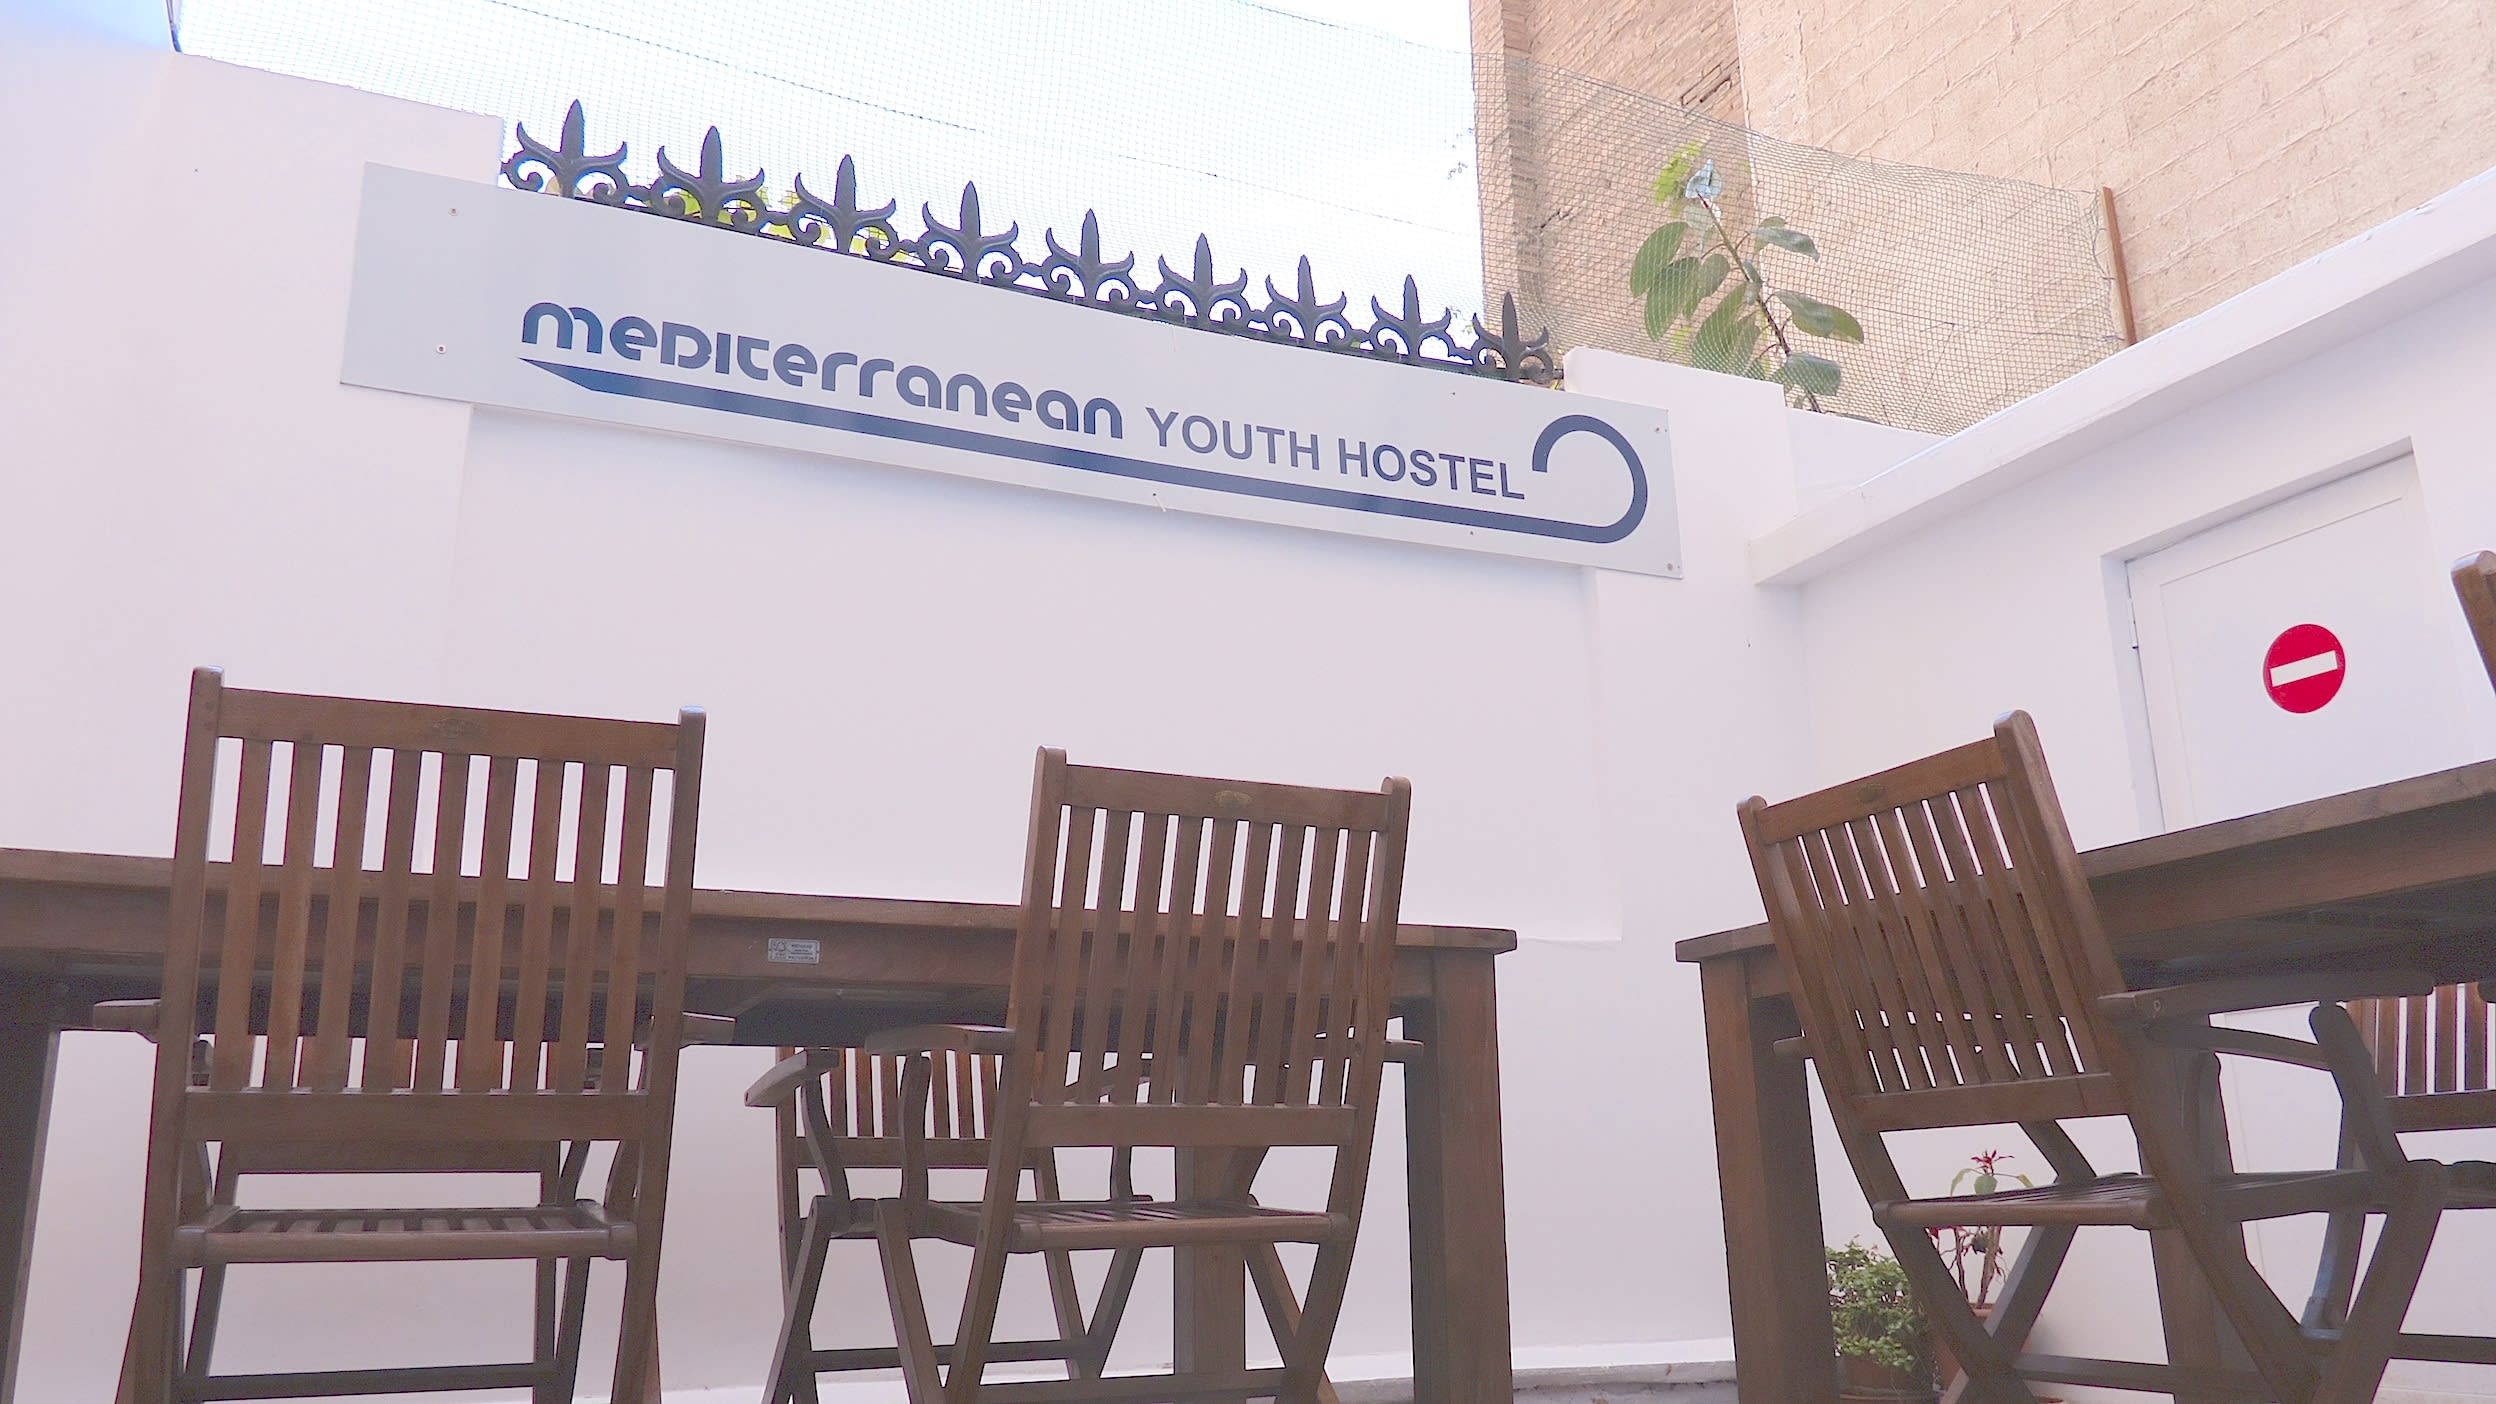 HOSTEL - Mediterranean Youth Hostel